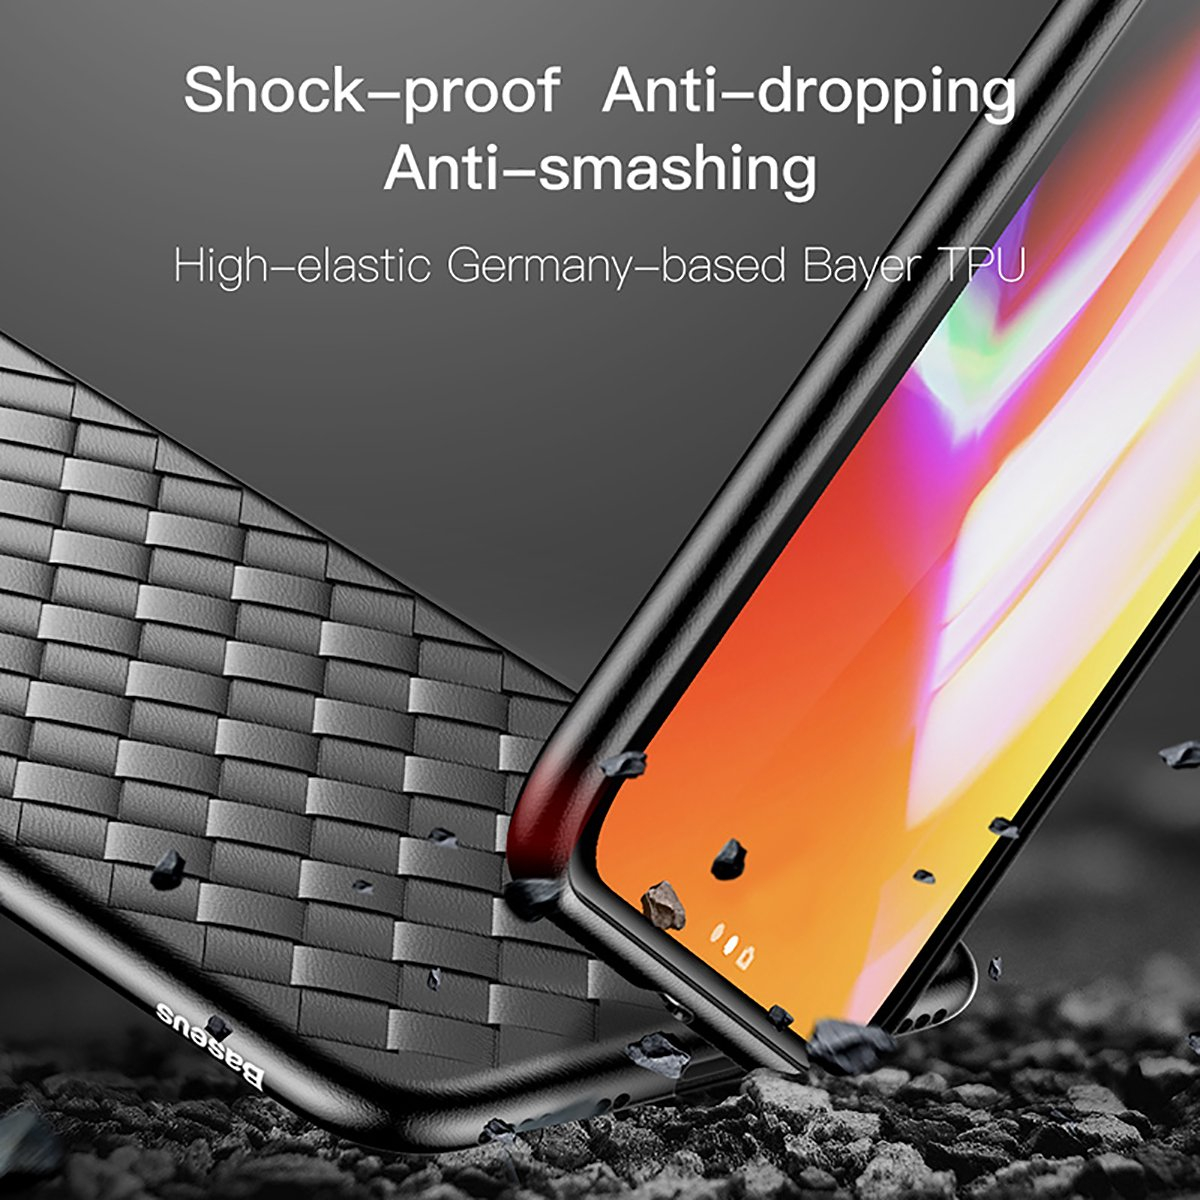 Iphone X Leather Caseiphone 10 Case Baseus Simple Anti Shock 7 47 Soft Tpu Fashion Exquisite Bv Weaving Absorption Protective Defender Impact Resistant